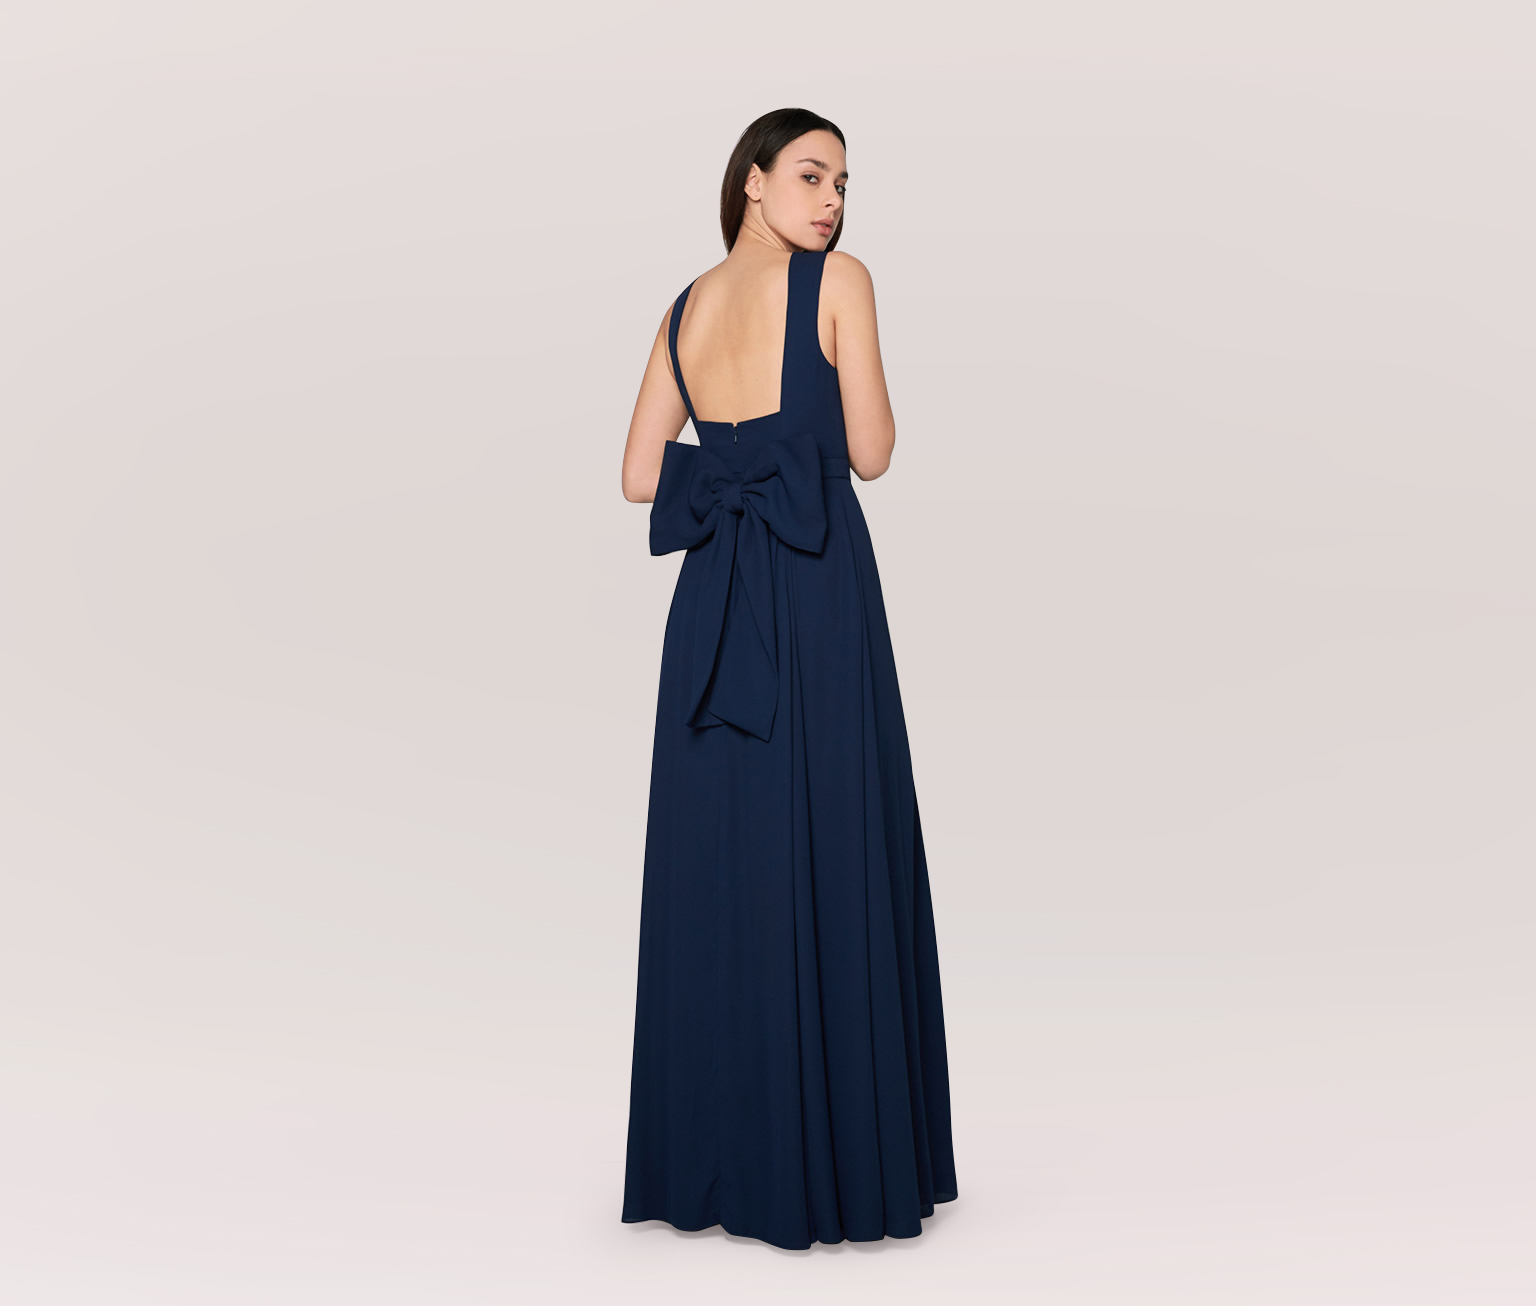 Navy Mother of the Bride Dresses, Fame and Partners Dress with Bow Back